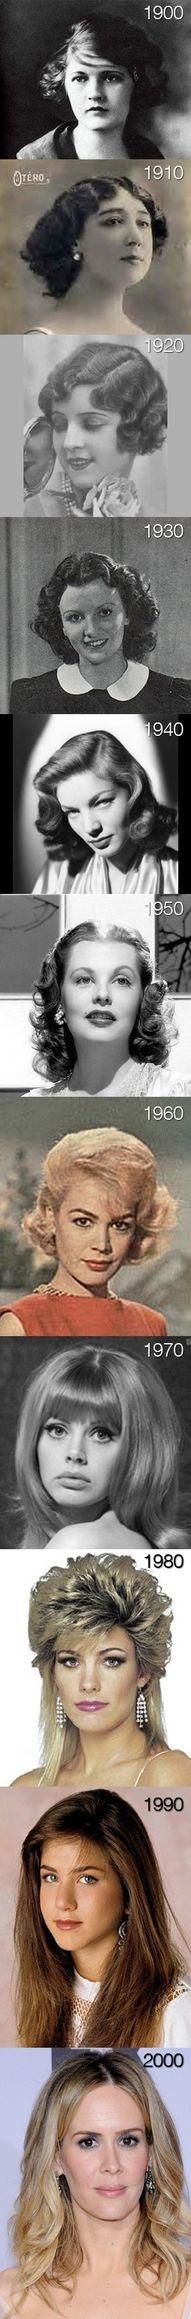 Hairstyles over the years